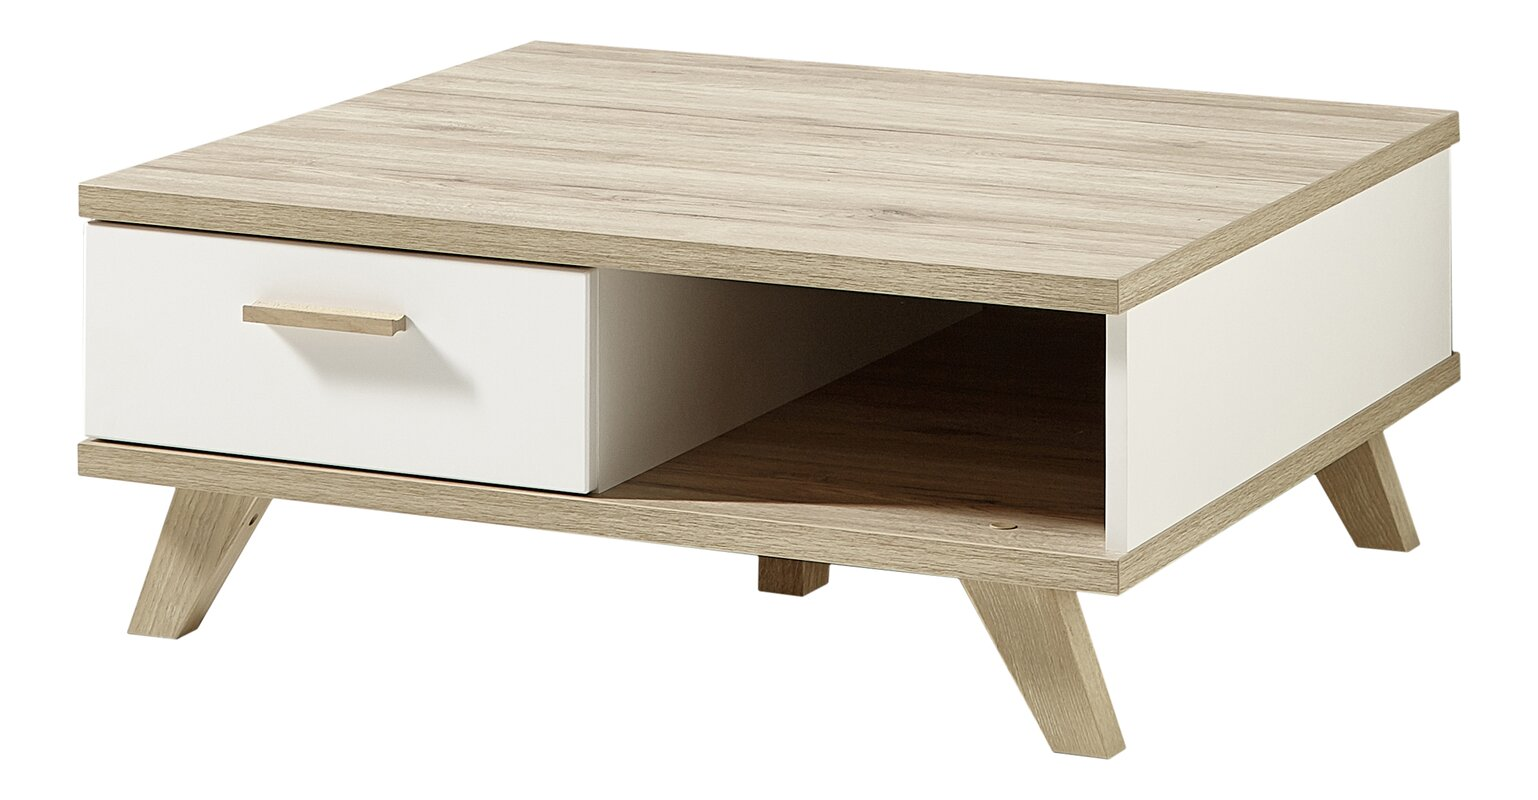 fjørde & co oslo coffee table | wayfair.co.uk